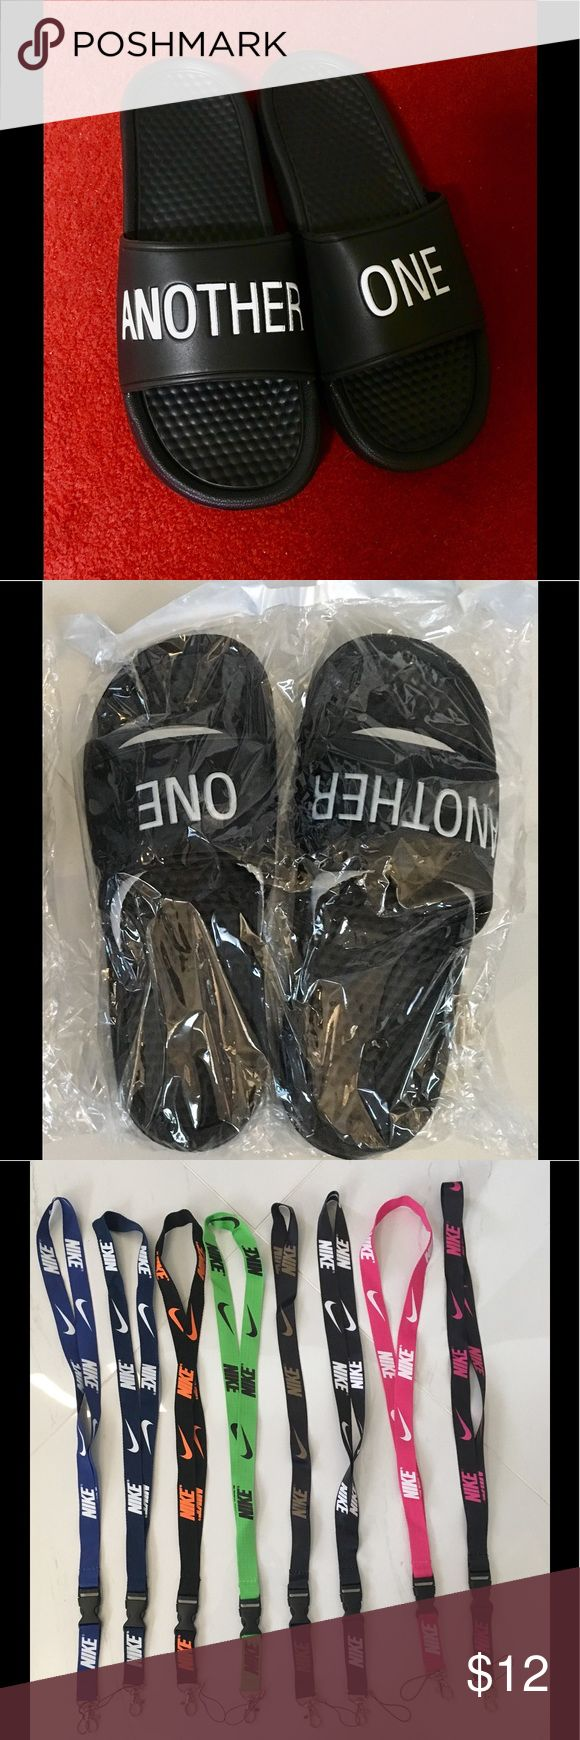 """Another One Slides + FREE Nike Lanyard!!! """"Another One"""" slides based on DJ Khalid's popular songs! Comfortable & trendy! Can be used for indoors & outdoors. For both men & women. I have the following sizes available: 7, 8, 9, 10, 11, and 12.   Plus I will throw in a FREE Nike lanyard with each pair. Message me if you want a specific color. Or else I will send you a random color! Shoes Slippers"""